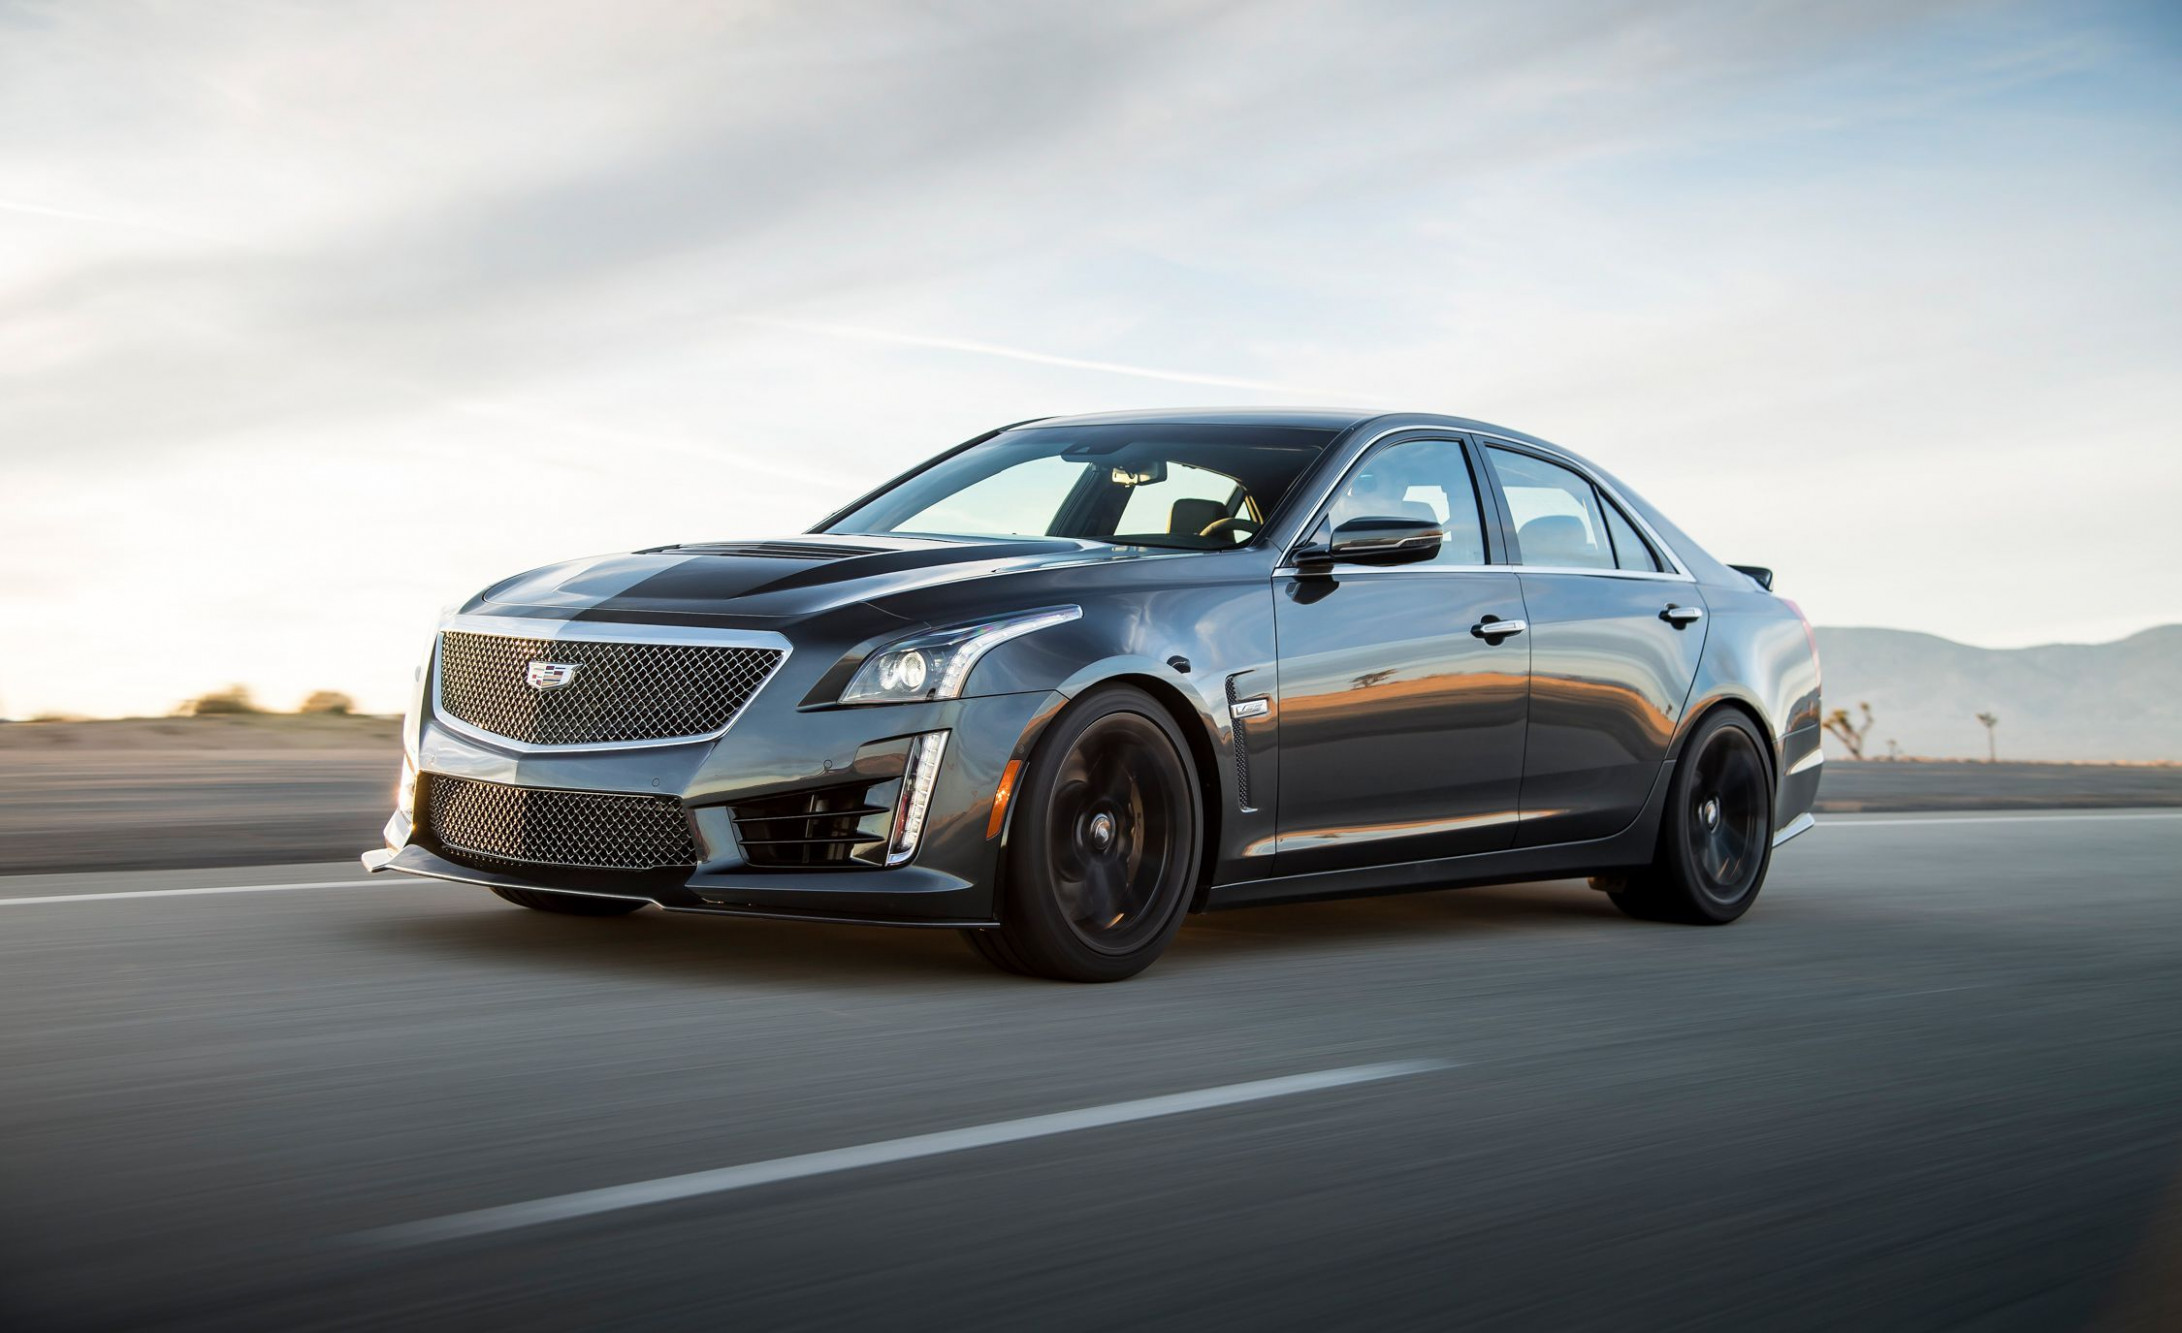 8 Cadillac CTS-V Review, Pricing, and Specs